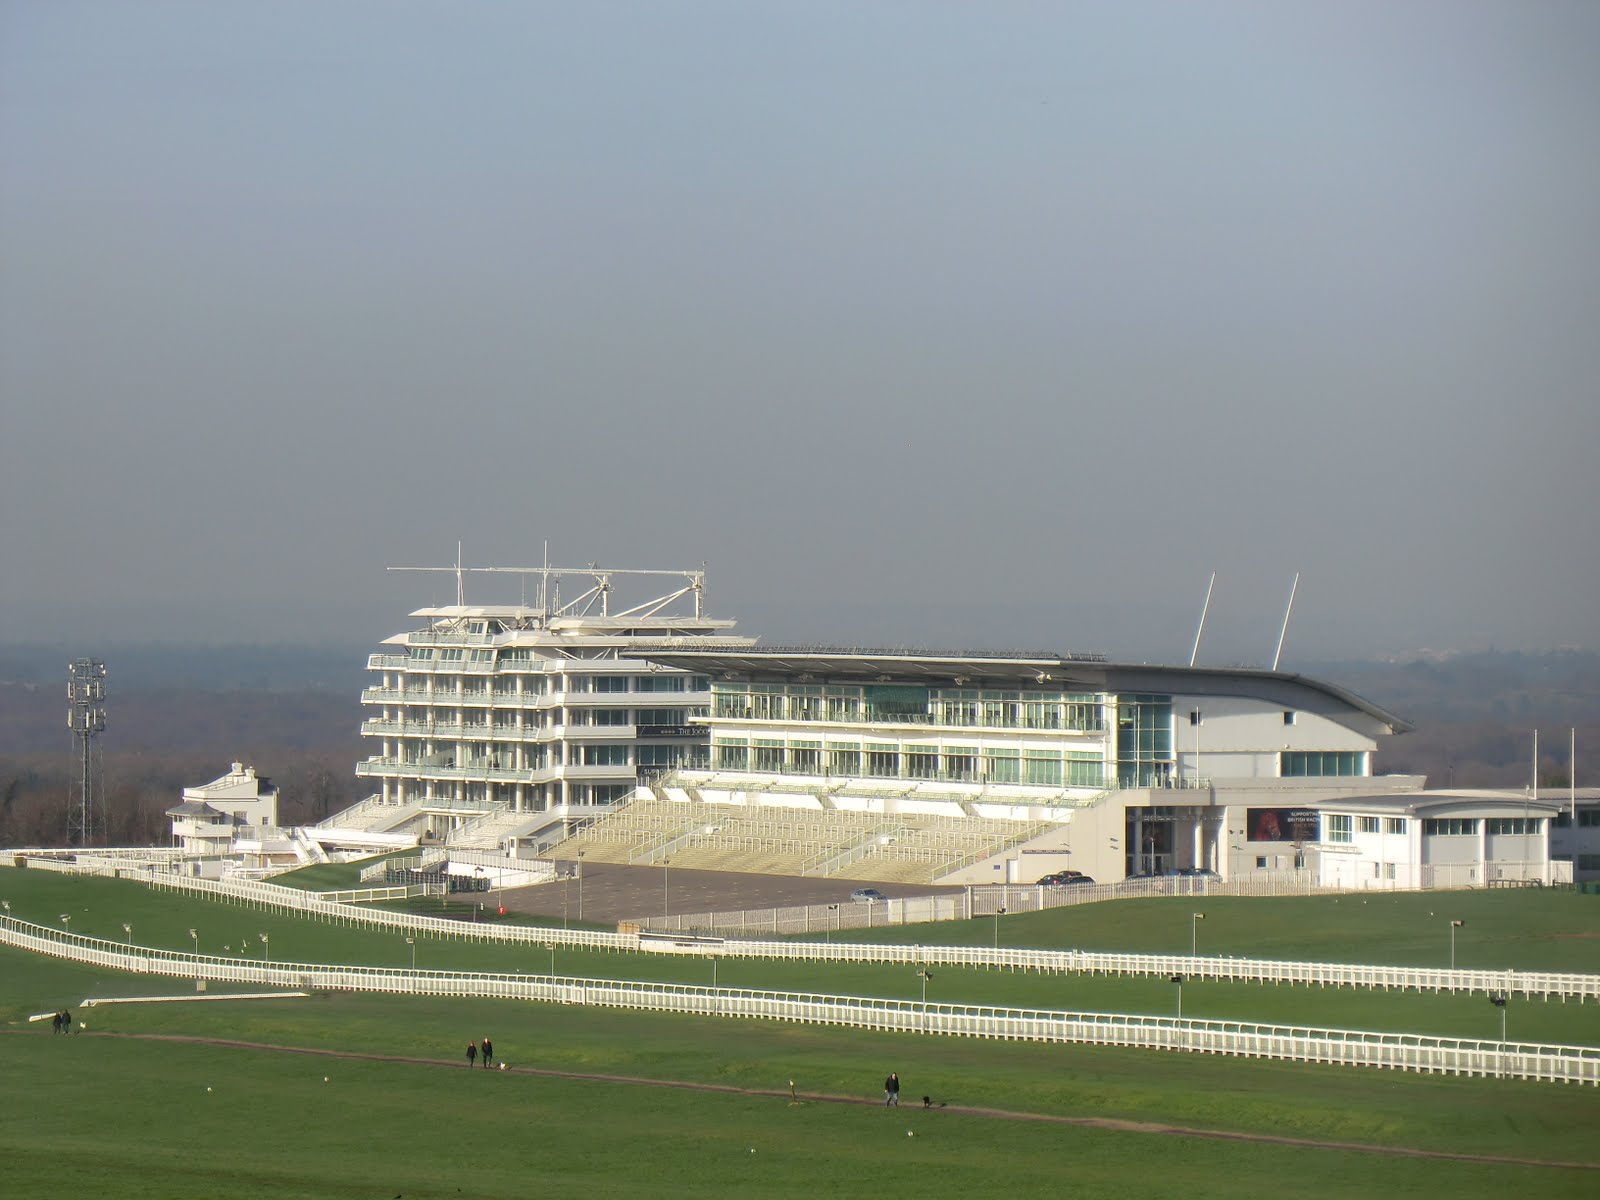 CIMG2210 Epsom Downs Racecourse